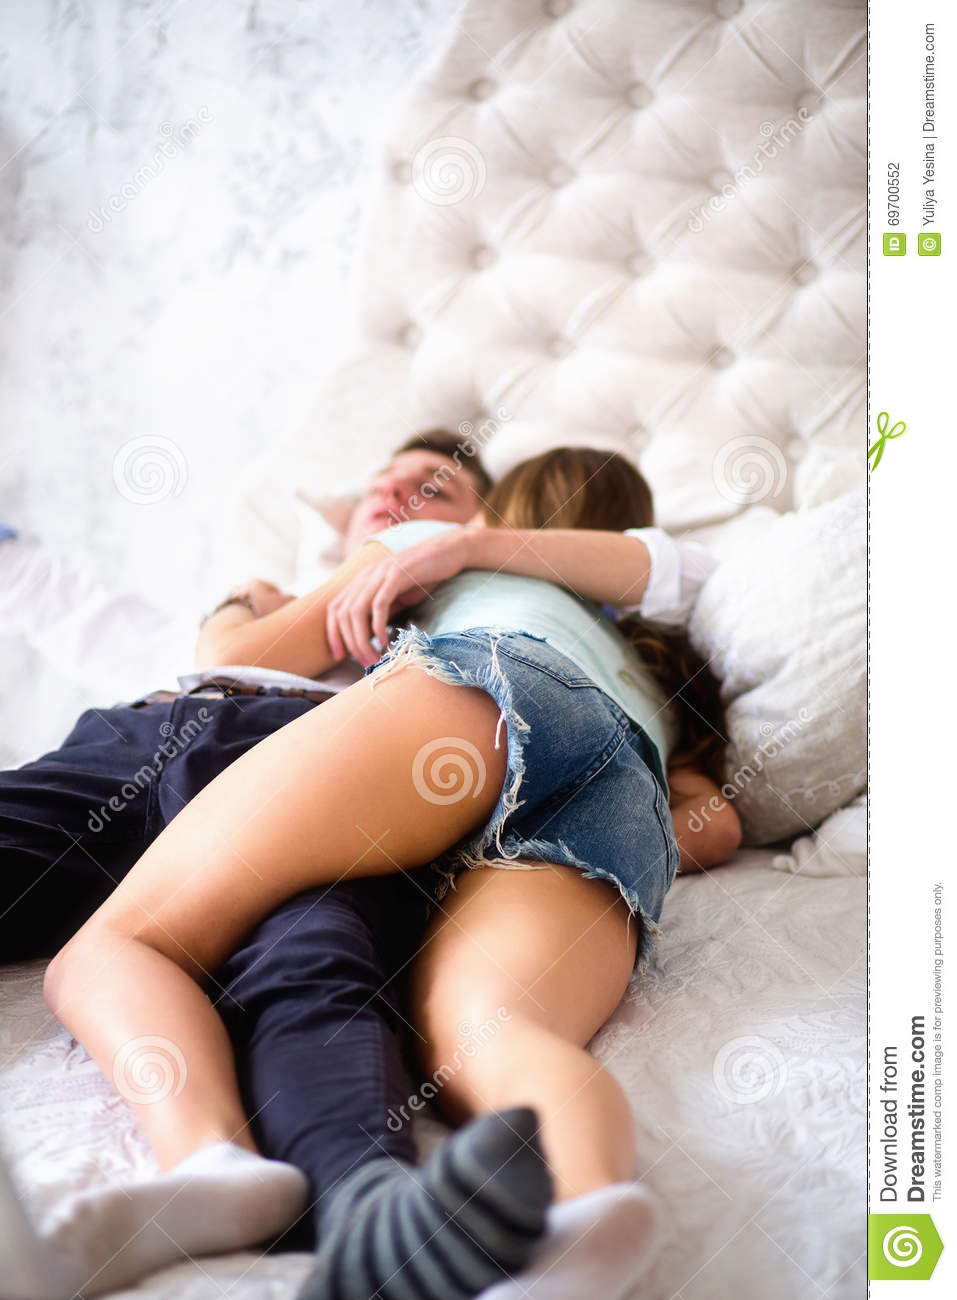 How To My In Bed Young Love Couple In Bed Girl Lying On The Boy S Shoulder